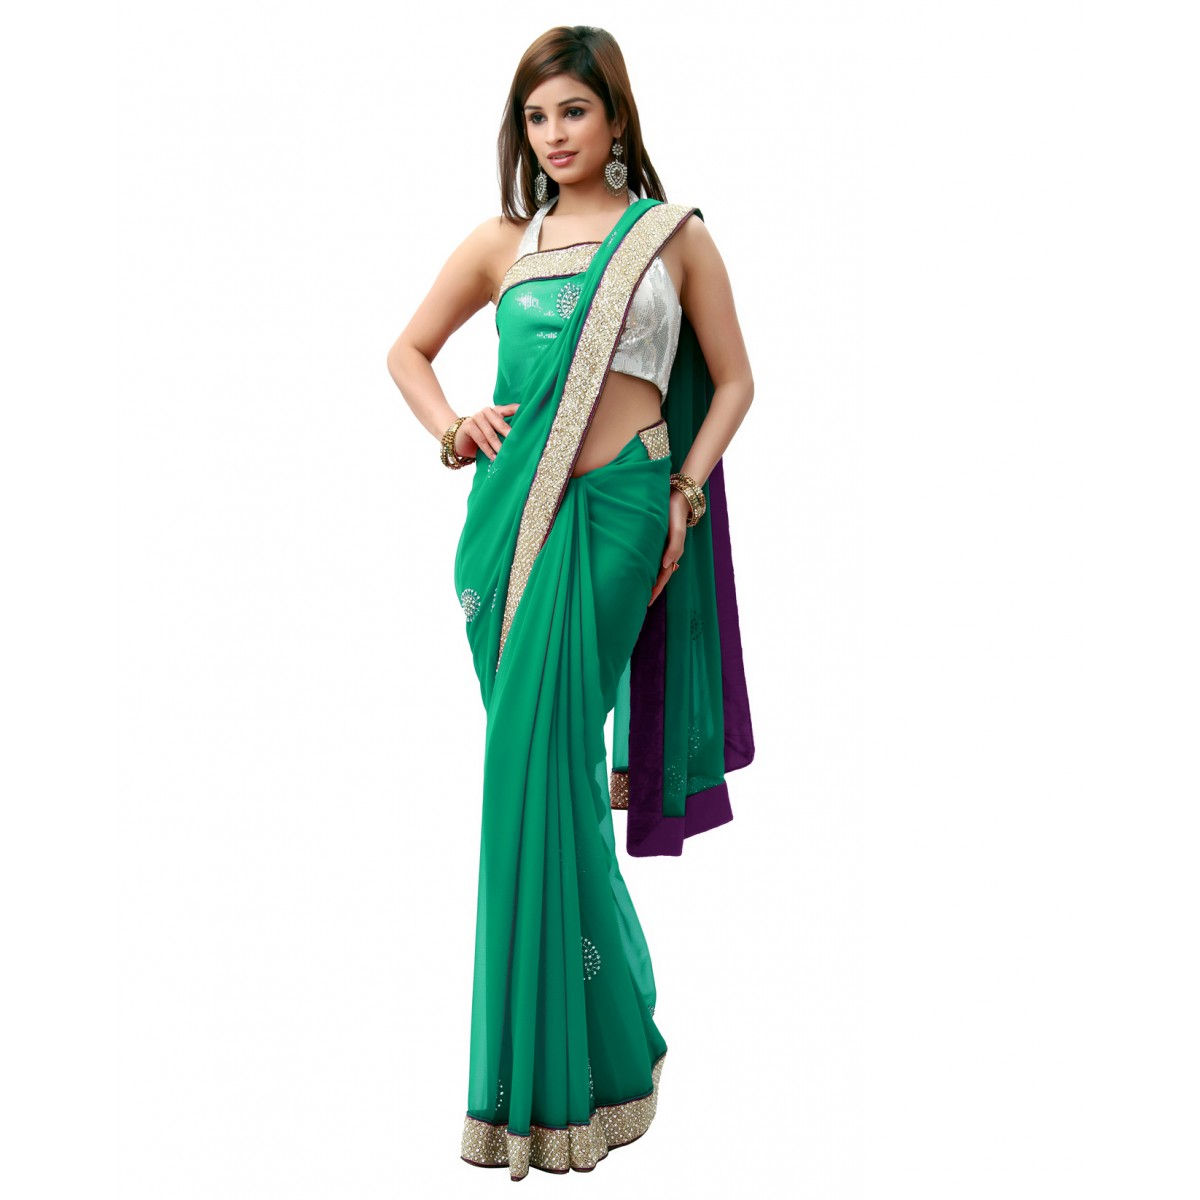 Location: Home » Fashion » Indian Designer Sarees Online Collection